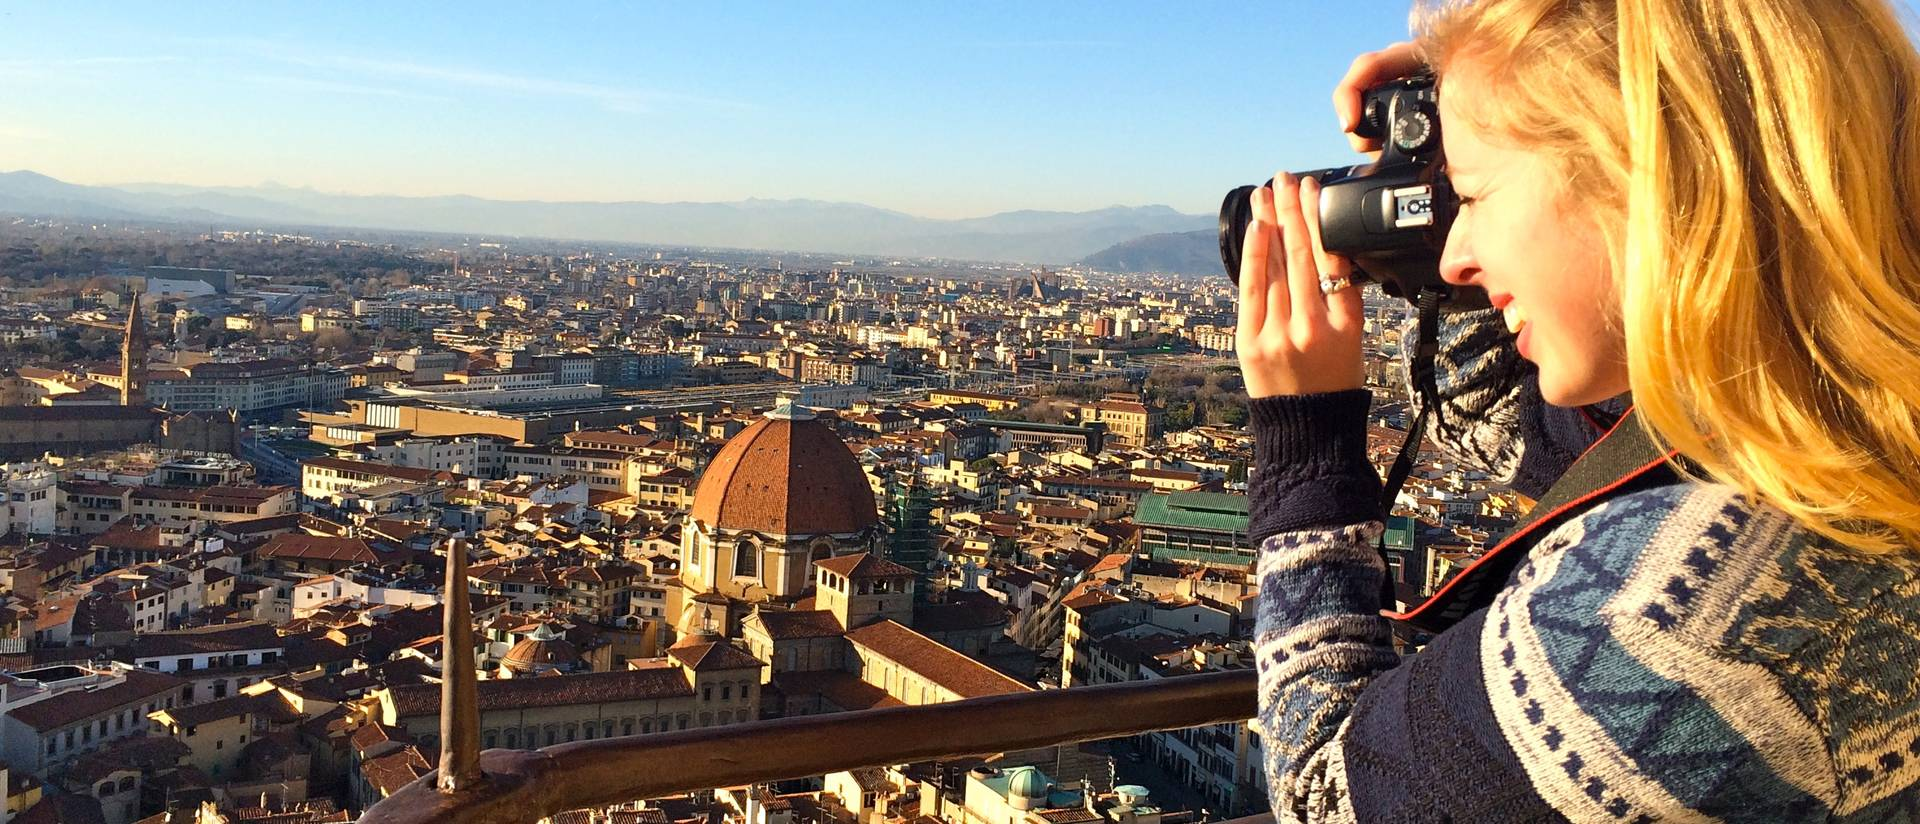 Humans of Study Abroad: 2015 Photo Contest